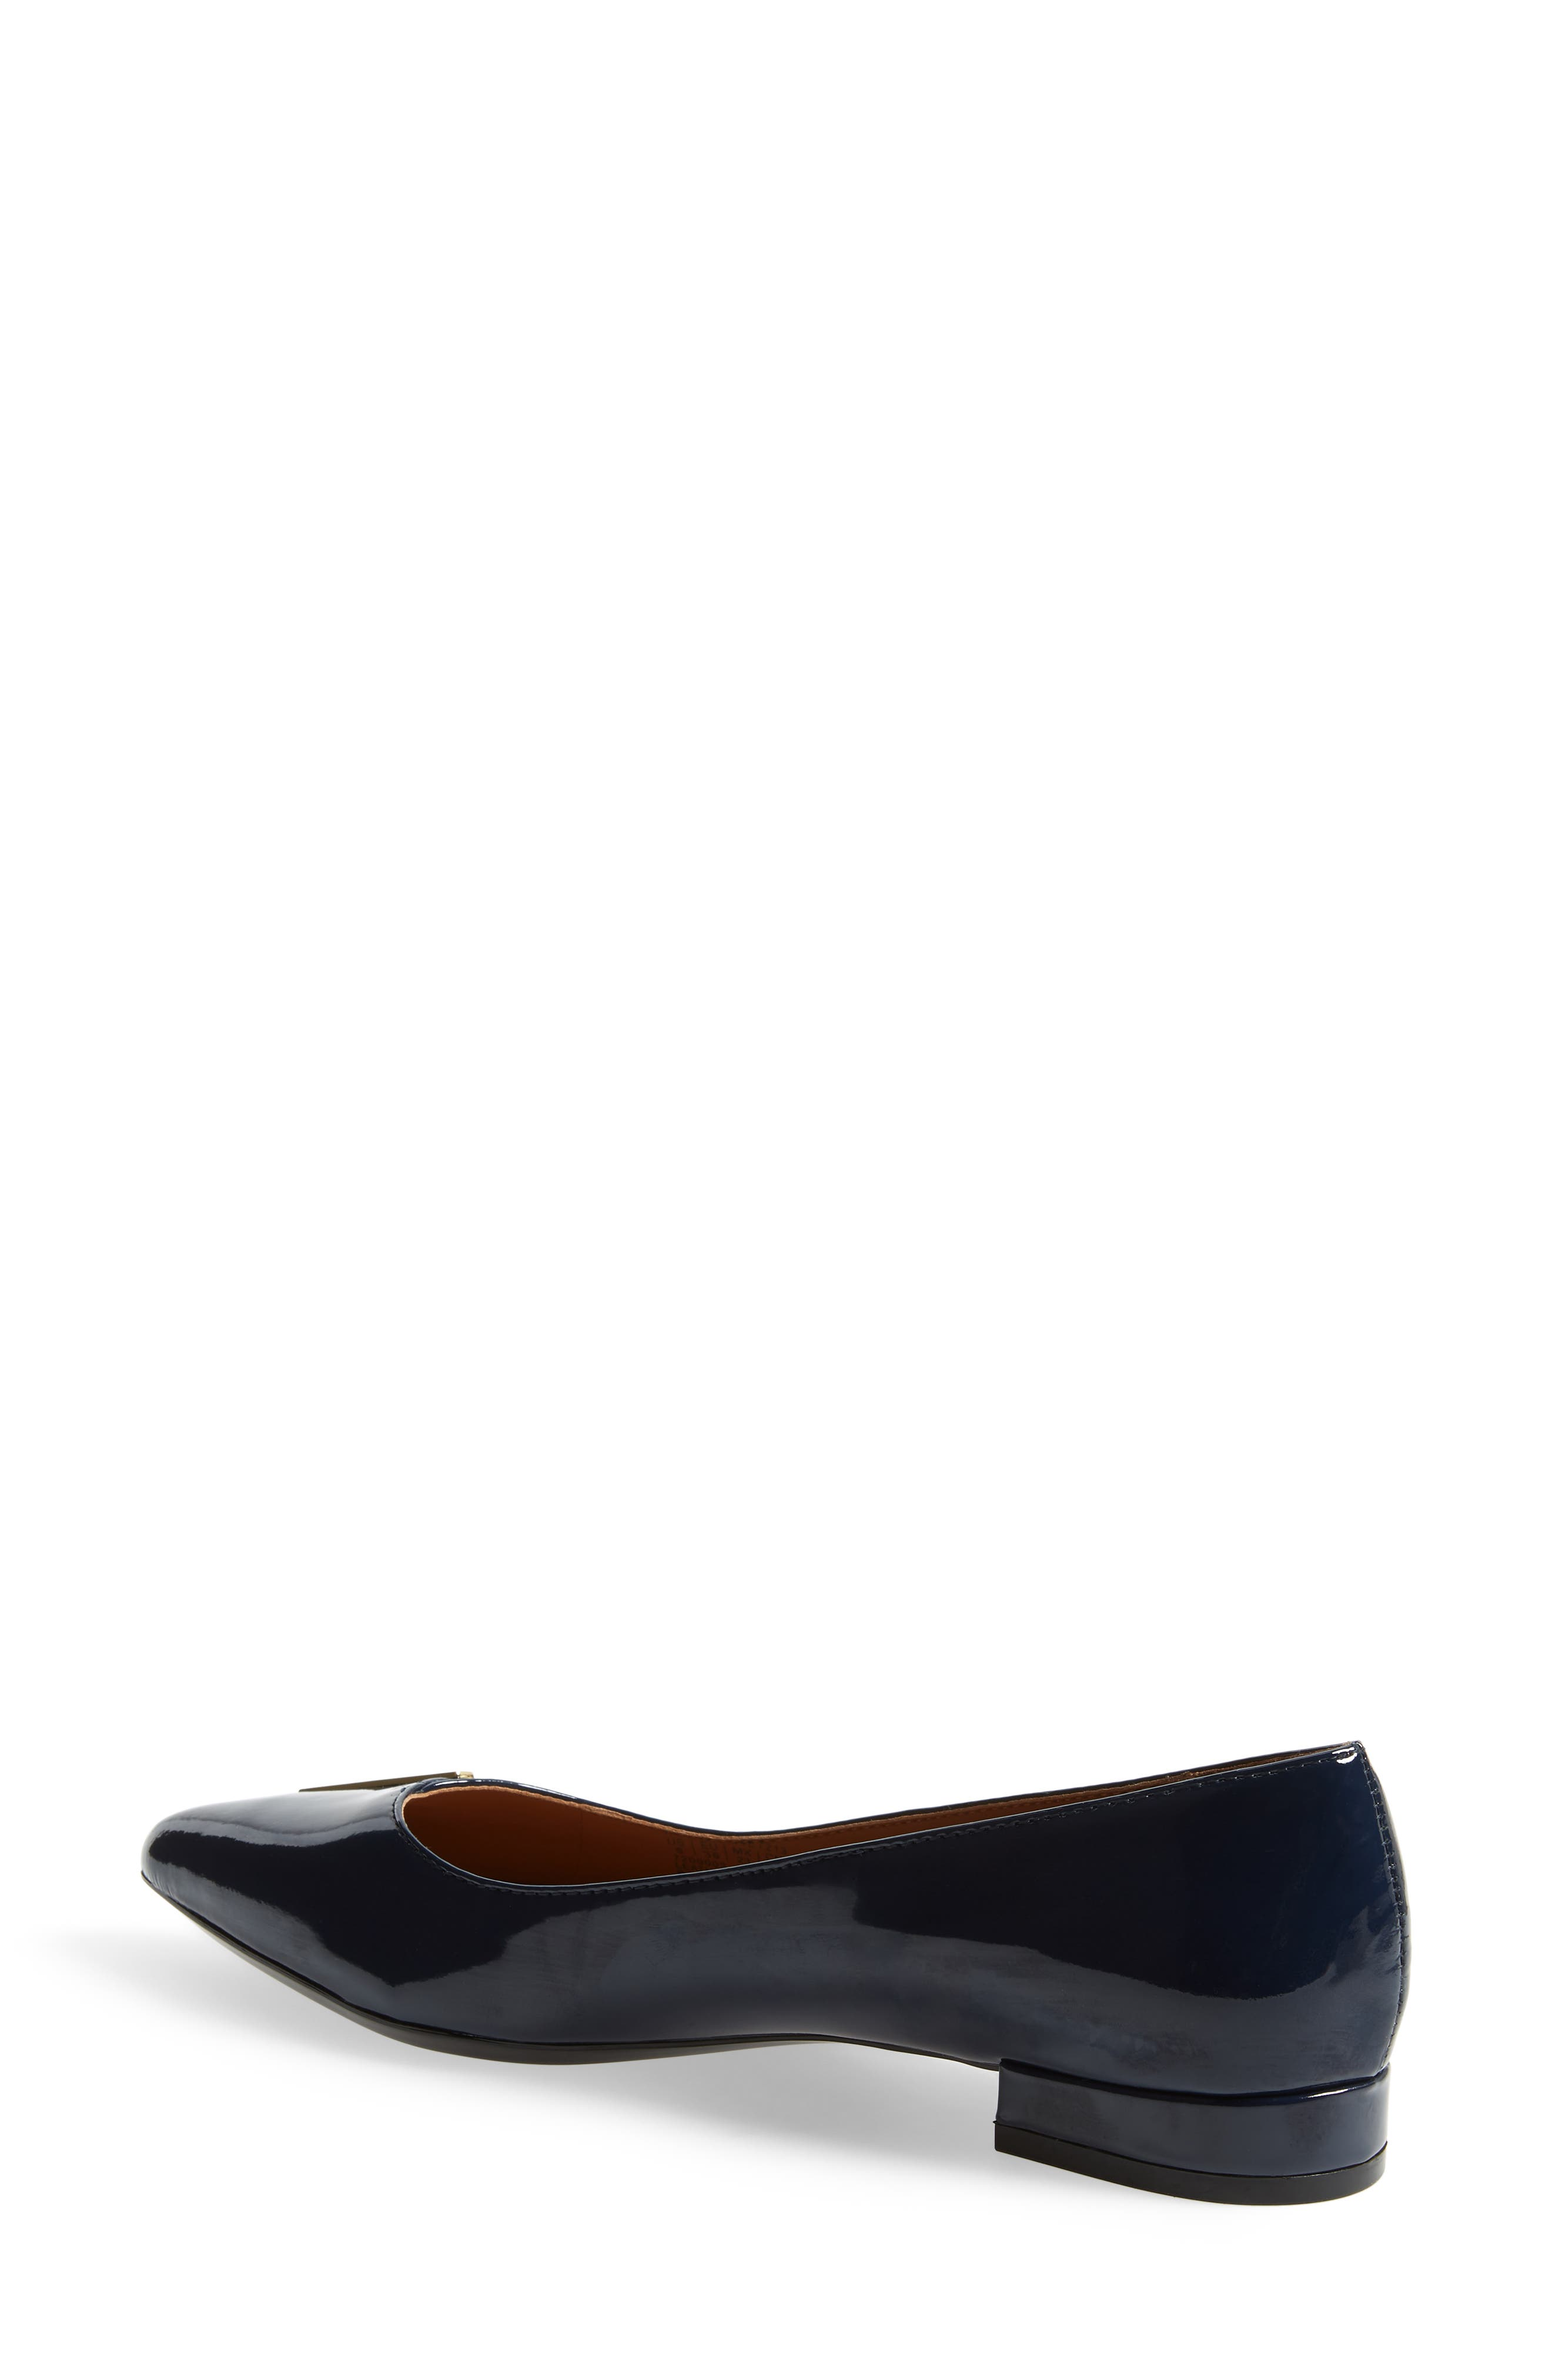 Arline Pointy Toe Flat,                             Alternate thumbnail 2, color,                             NAVY PATENT LEATHER